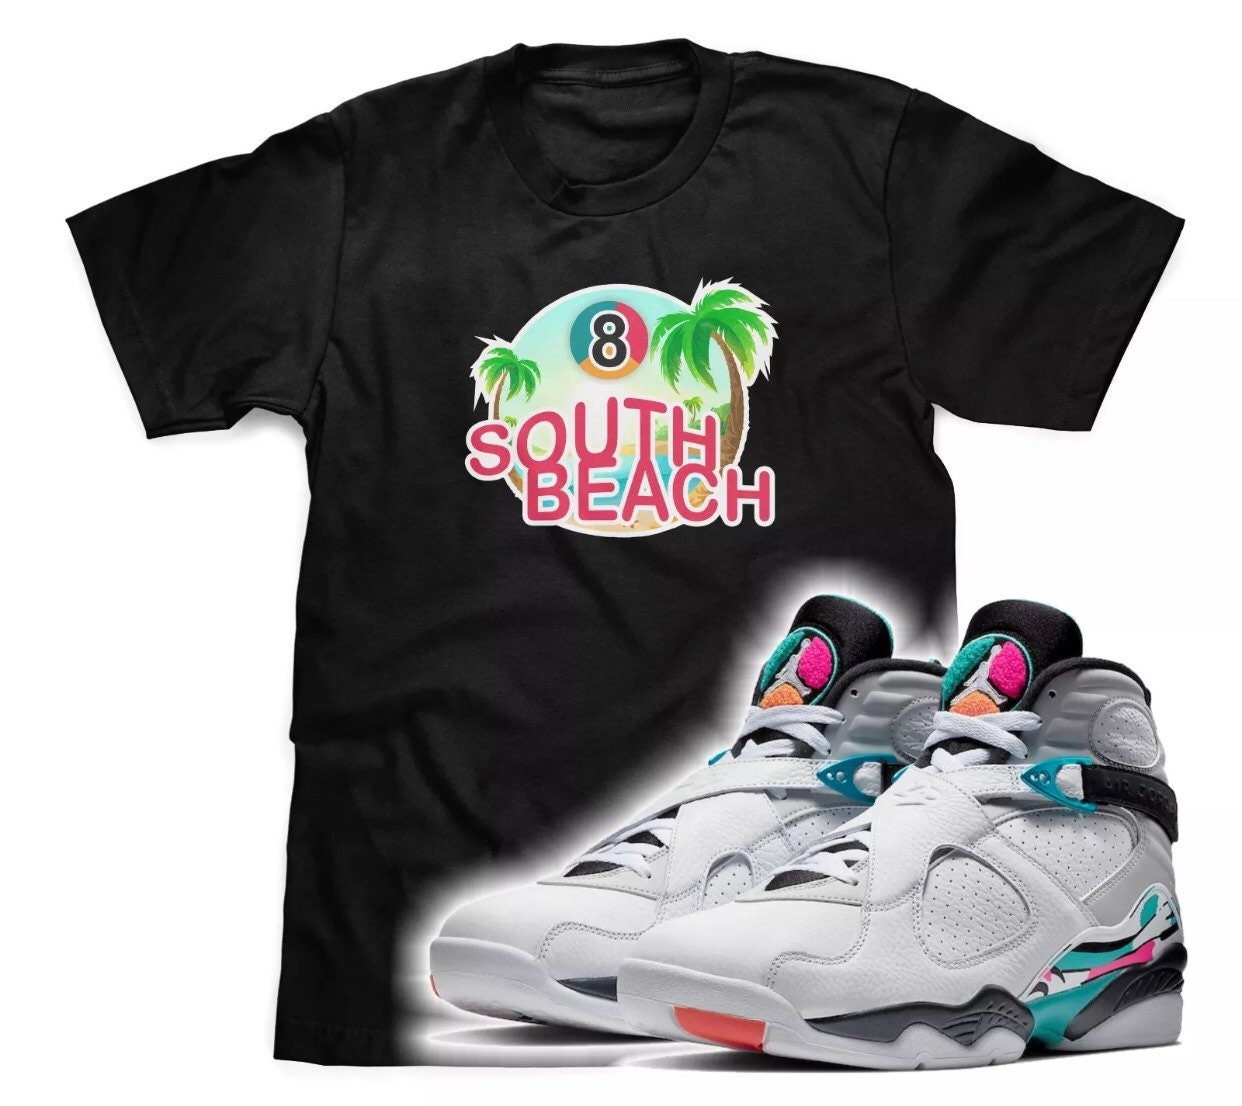 68b57974dd6 South Beach Black T-Shirt To Match Air Jordan Retro 8 South | Etsy